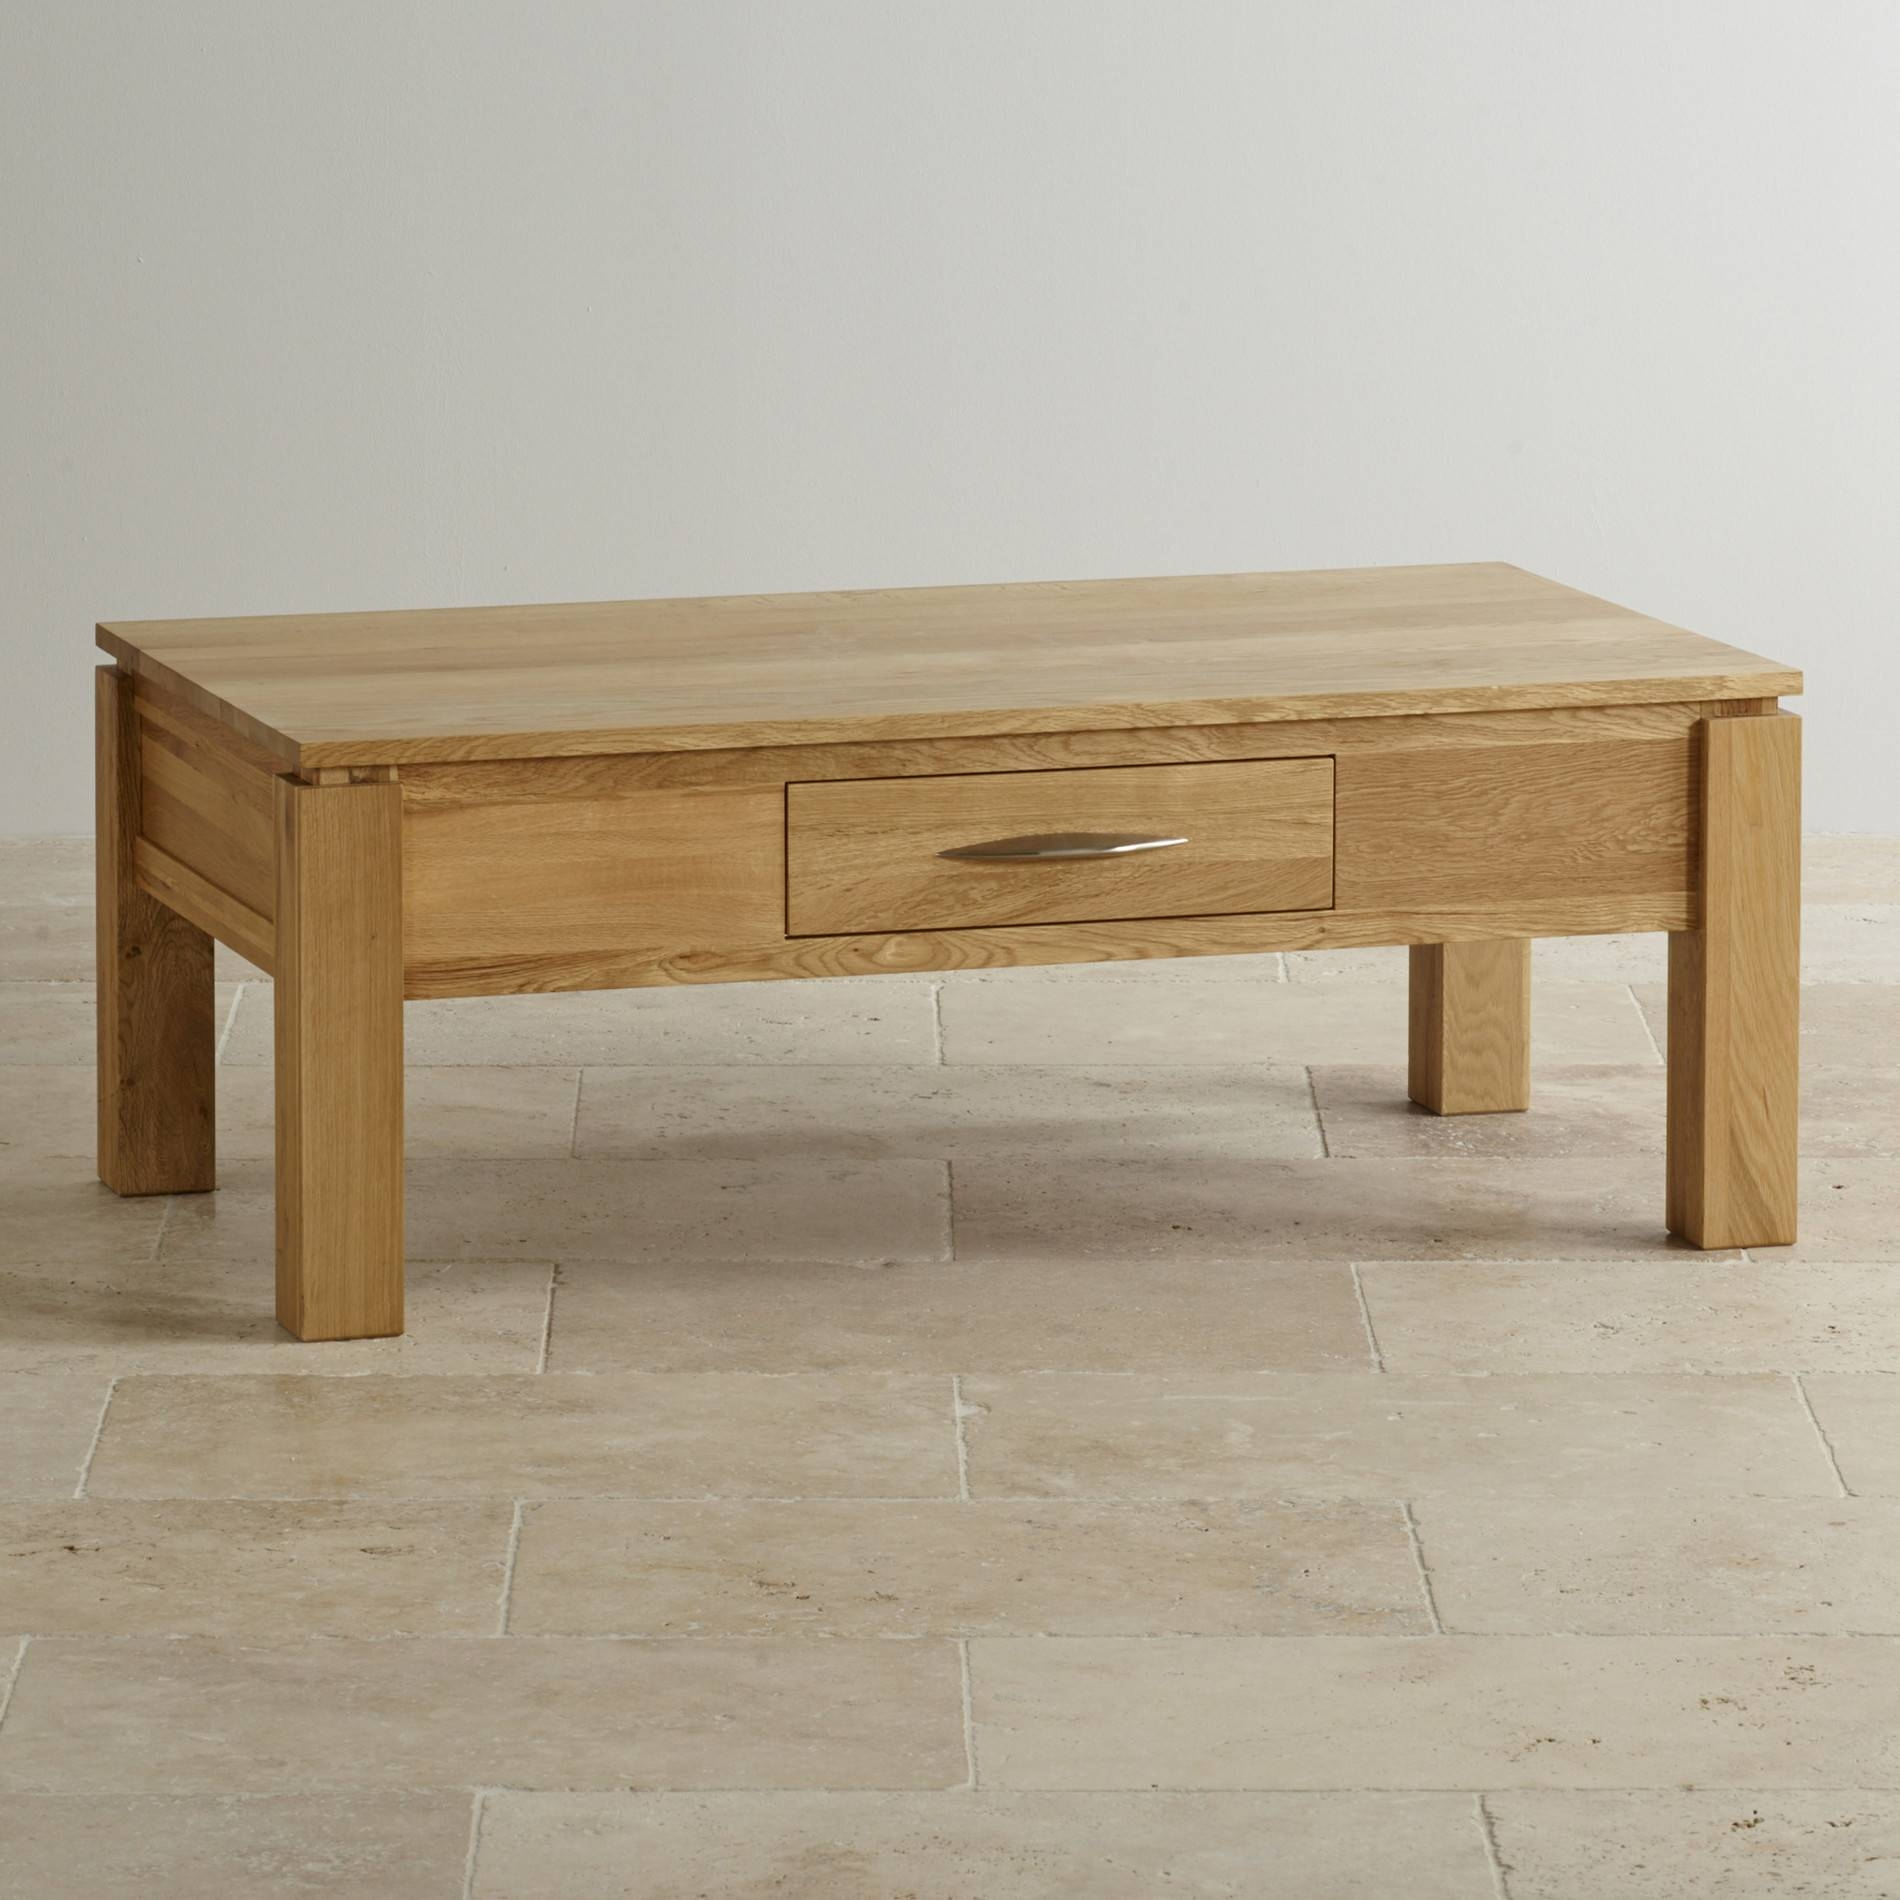 Galway Large Coffee Table In Solid Oak | Oak Furniture Land with regard to Solid Oak Coffee Table With Storage (Image 7 of 15)